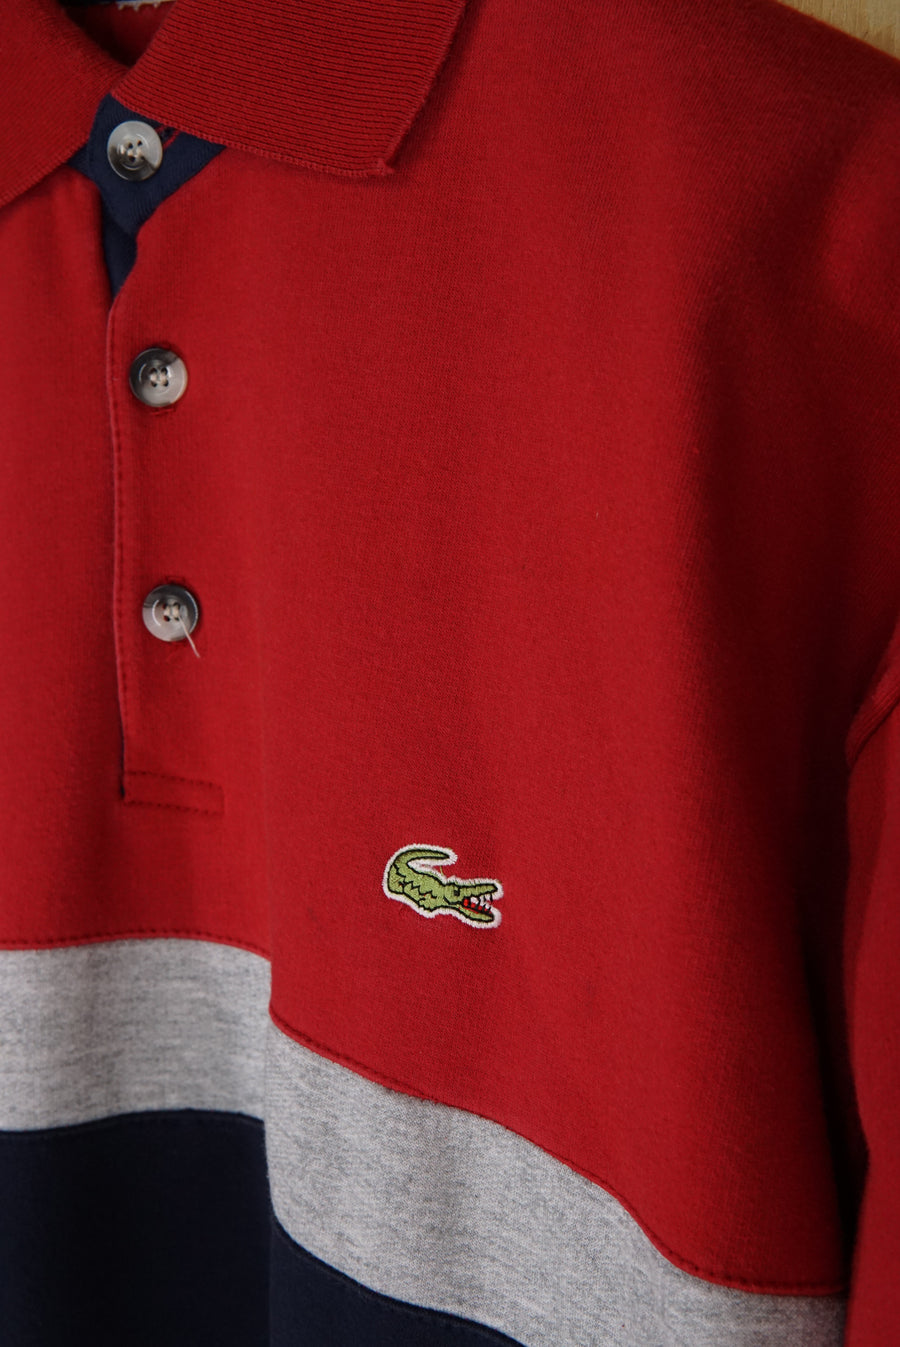 Kids wool cardigan - size 98/104